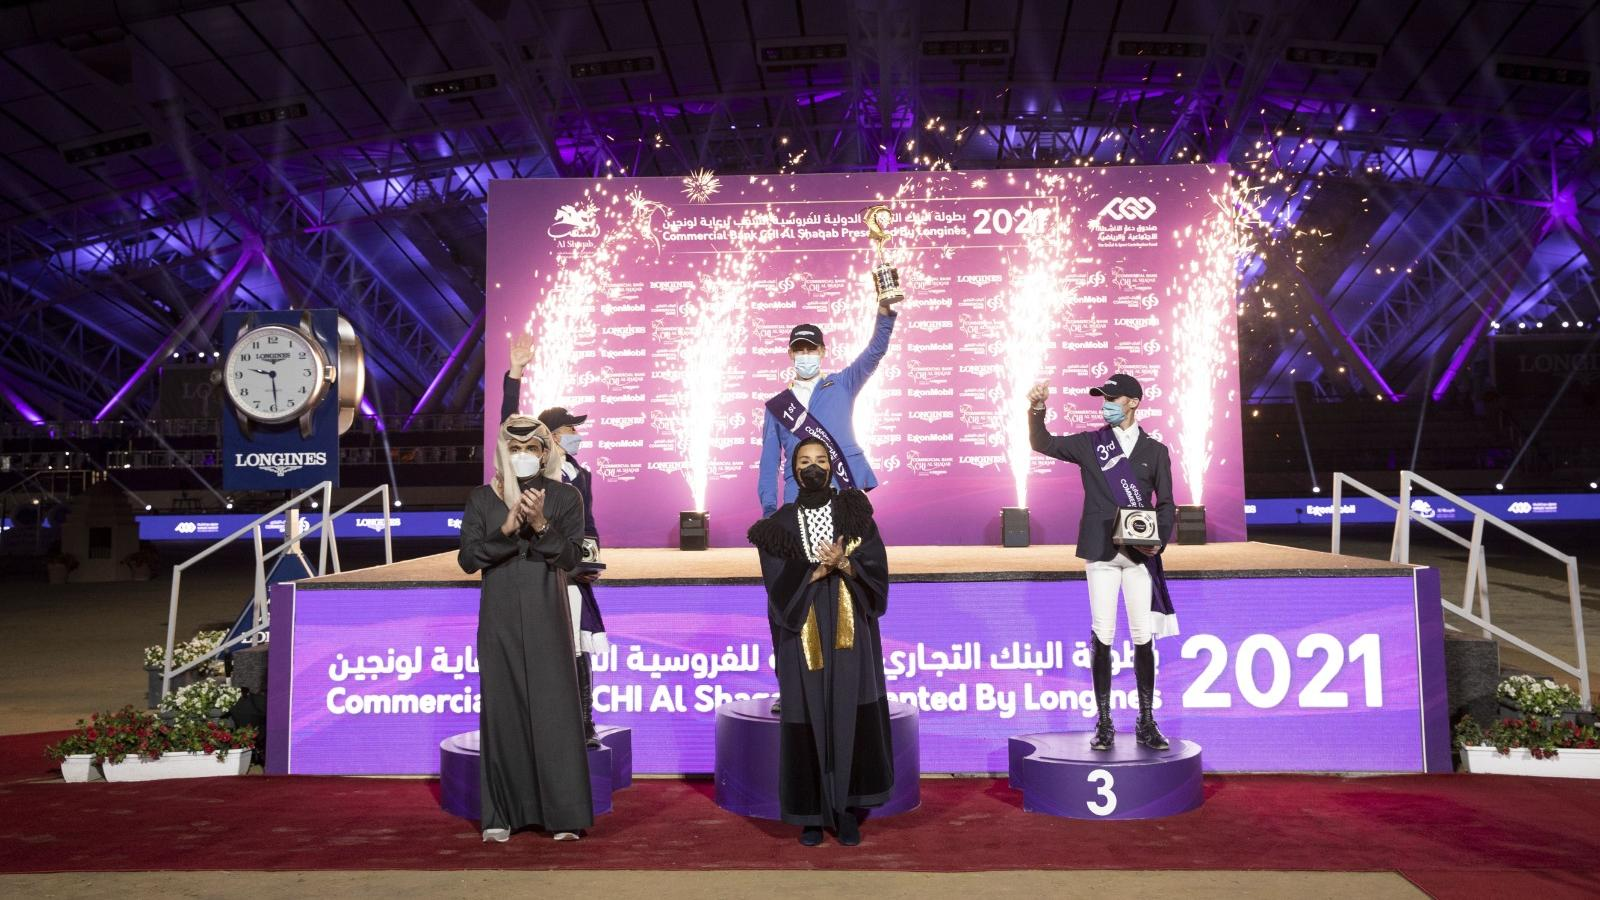 Sheikha Moza crowns winners of 8th Commercial Bank CHI Al Shaqab presented by Longines